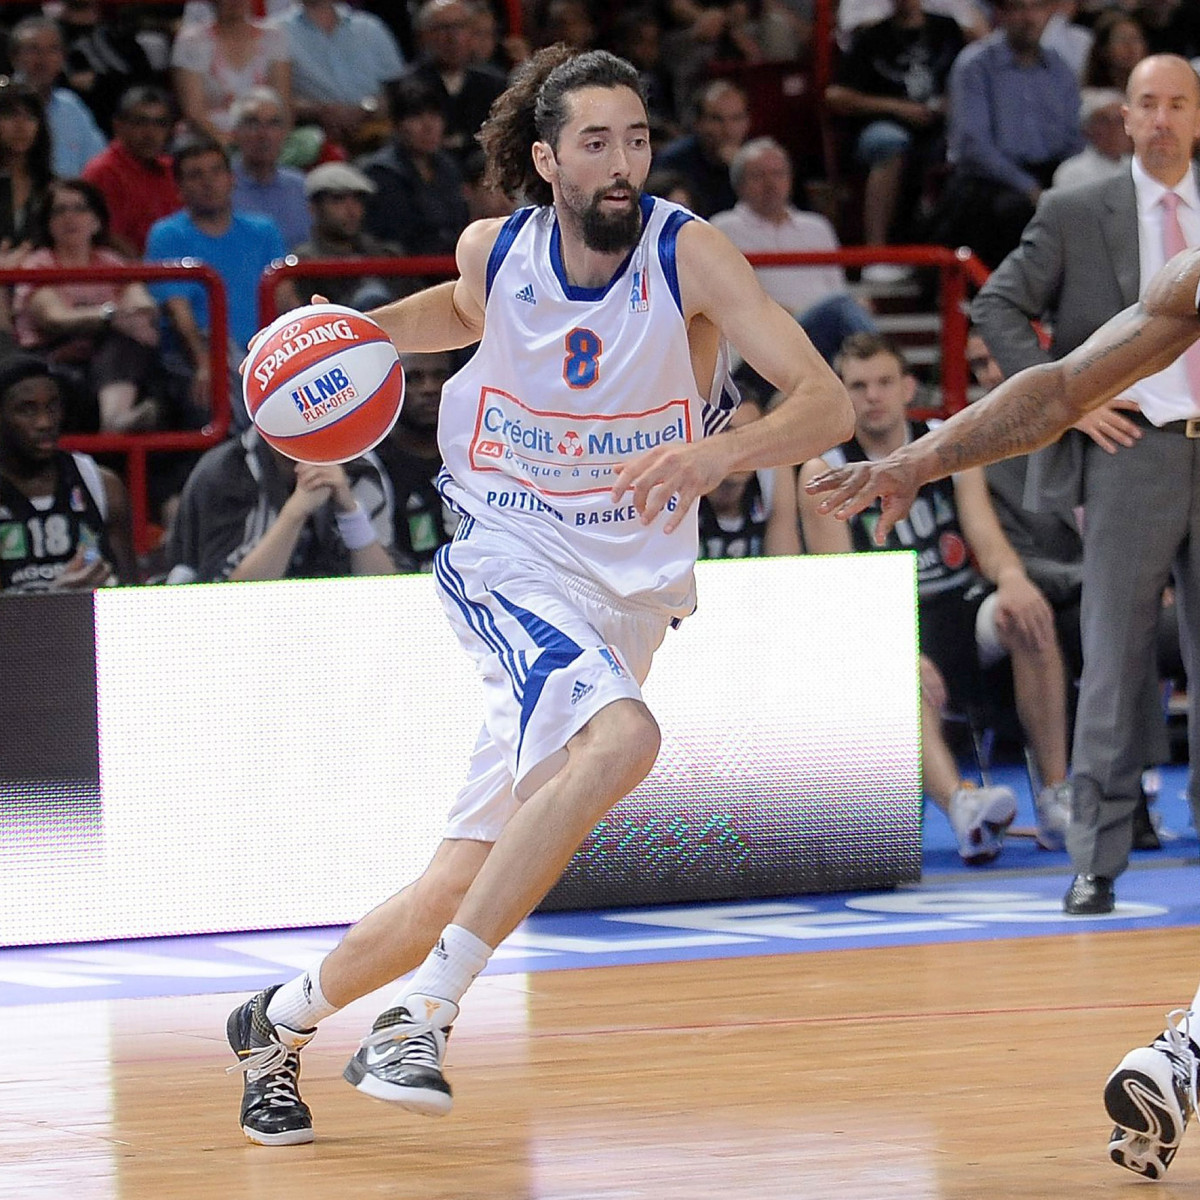 Photo of Sylvain Maynier, 2008-2009 season